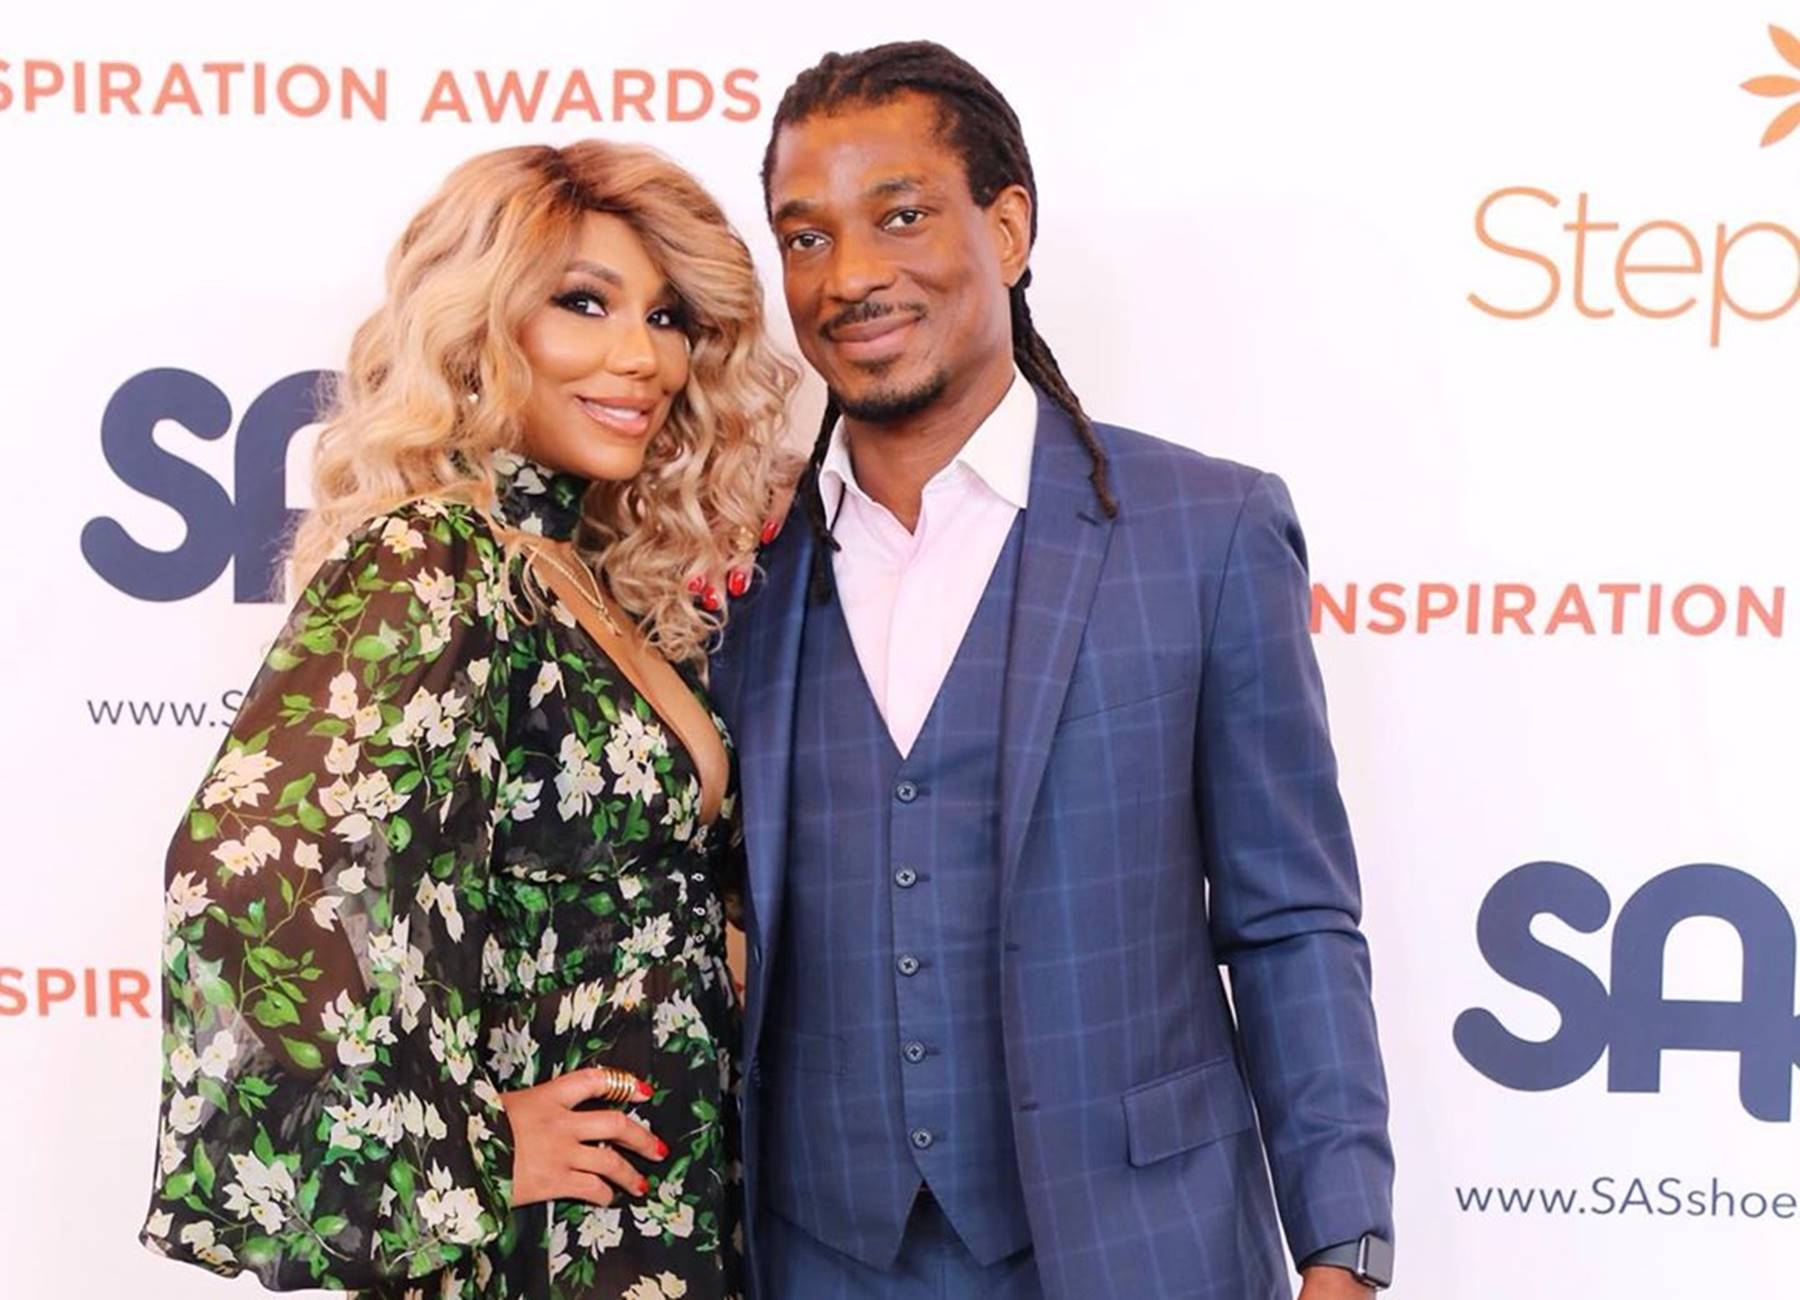 David Adefeso Claims Vincent Herbert Was Going To Send 'Goons' After Him And Says Tamar Braxton Is Threatening To Do It